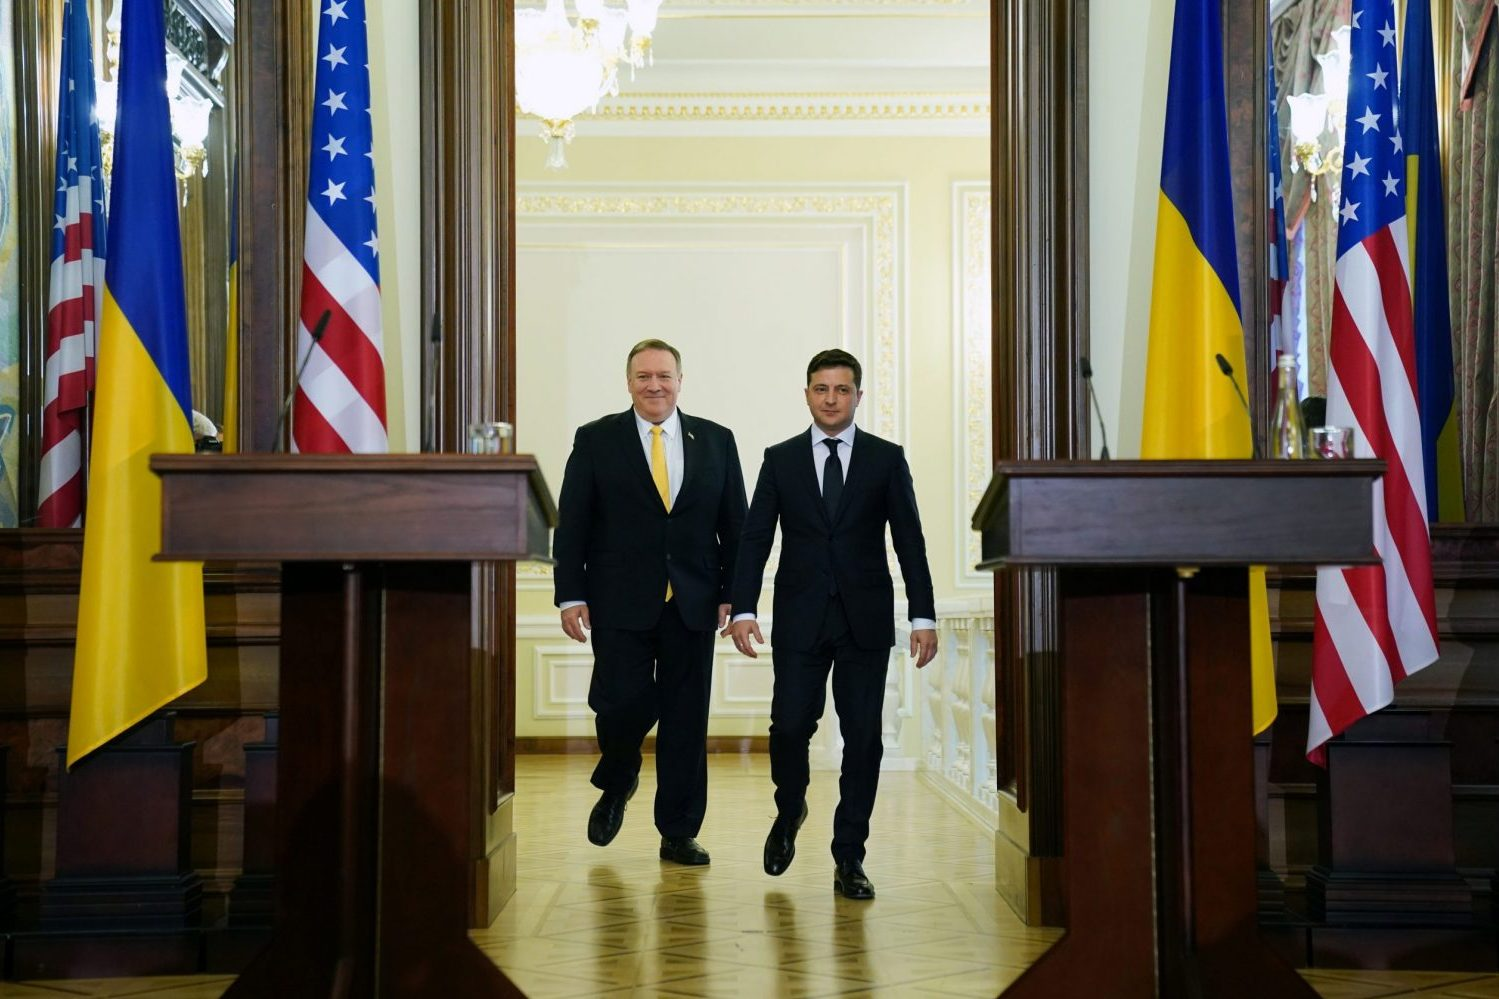 Impeachment drama gives Ukraine a US brand boost